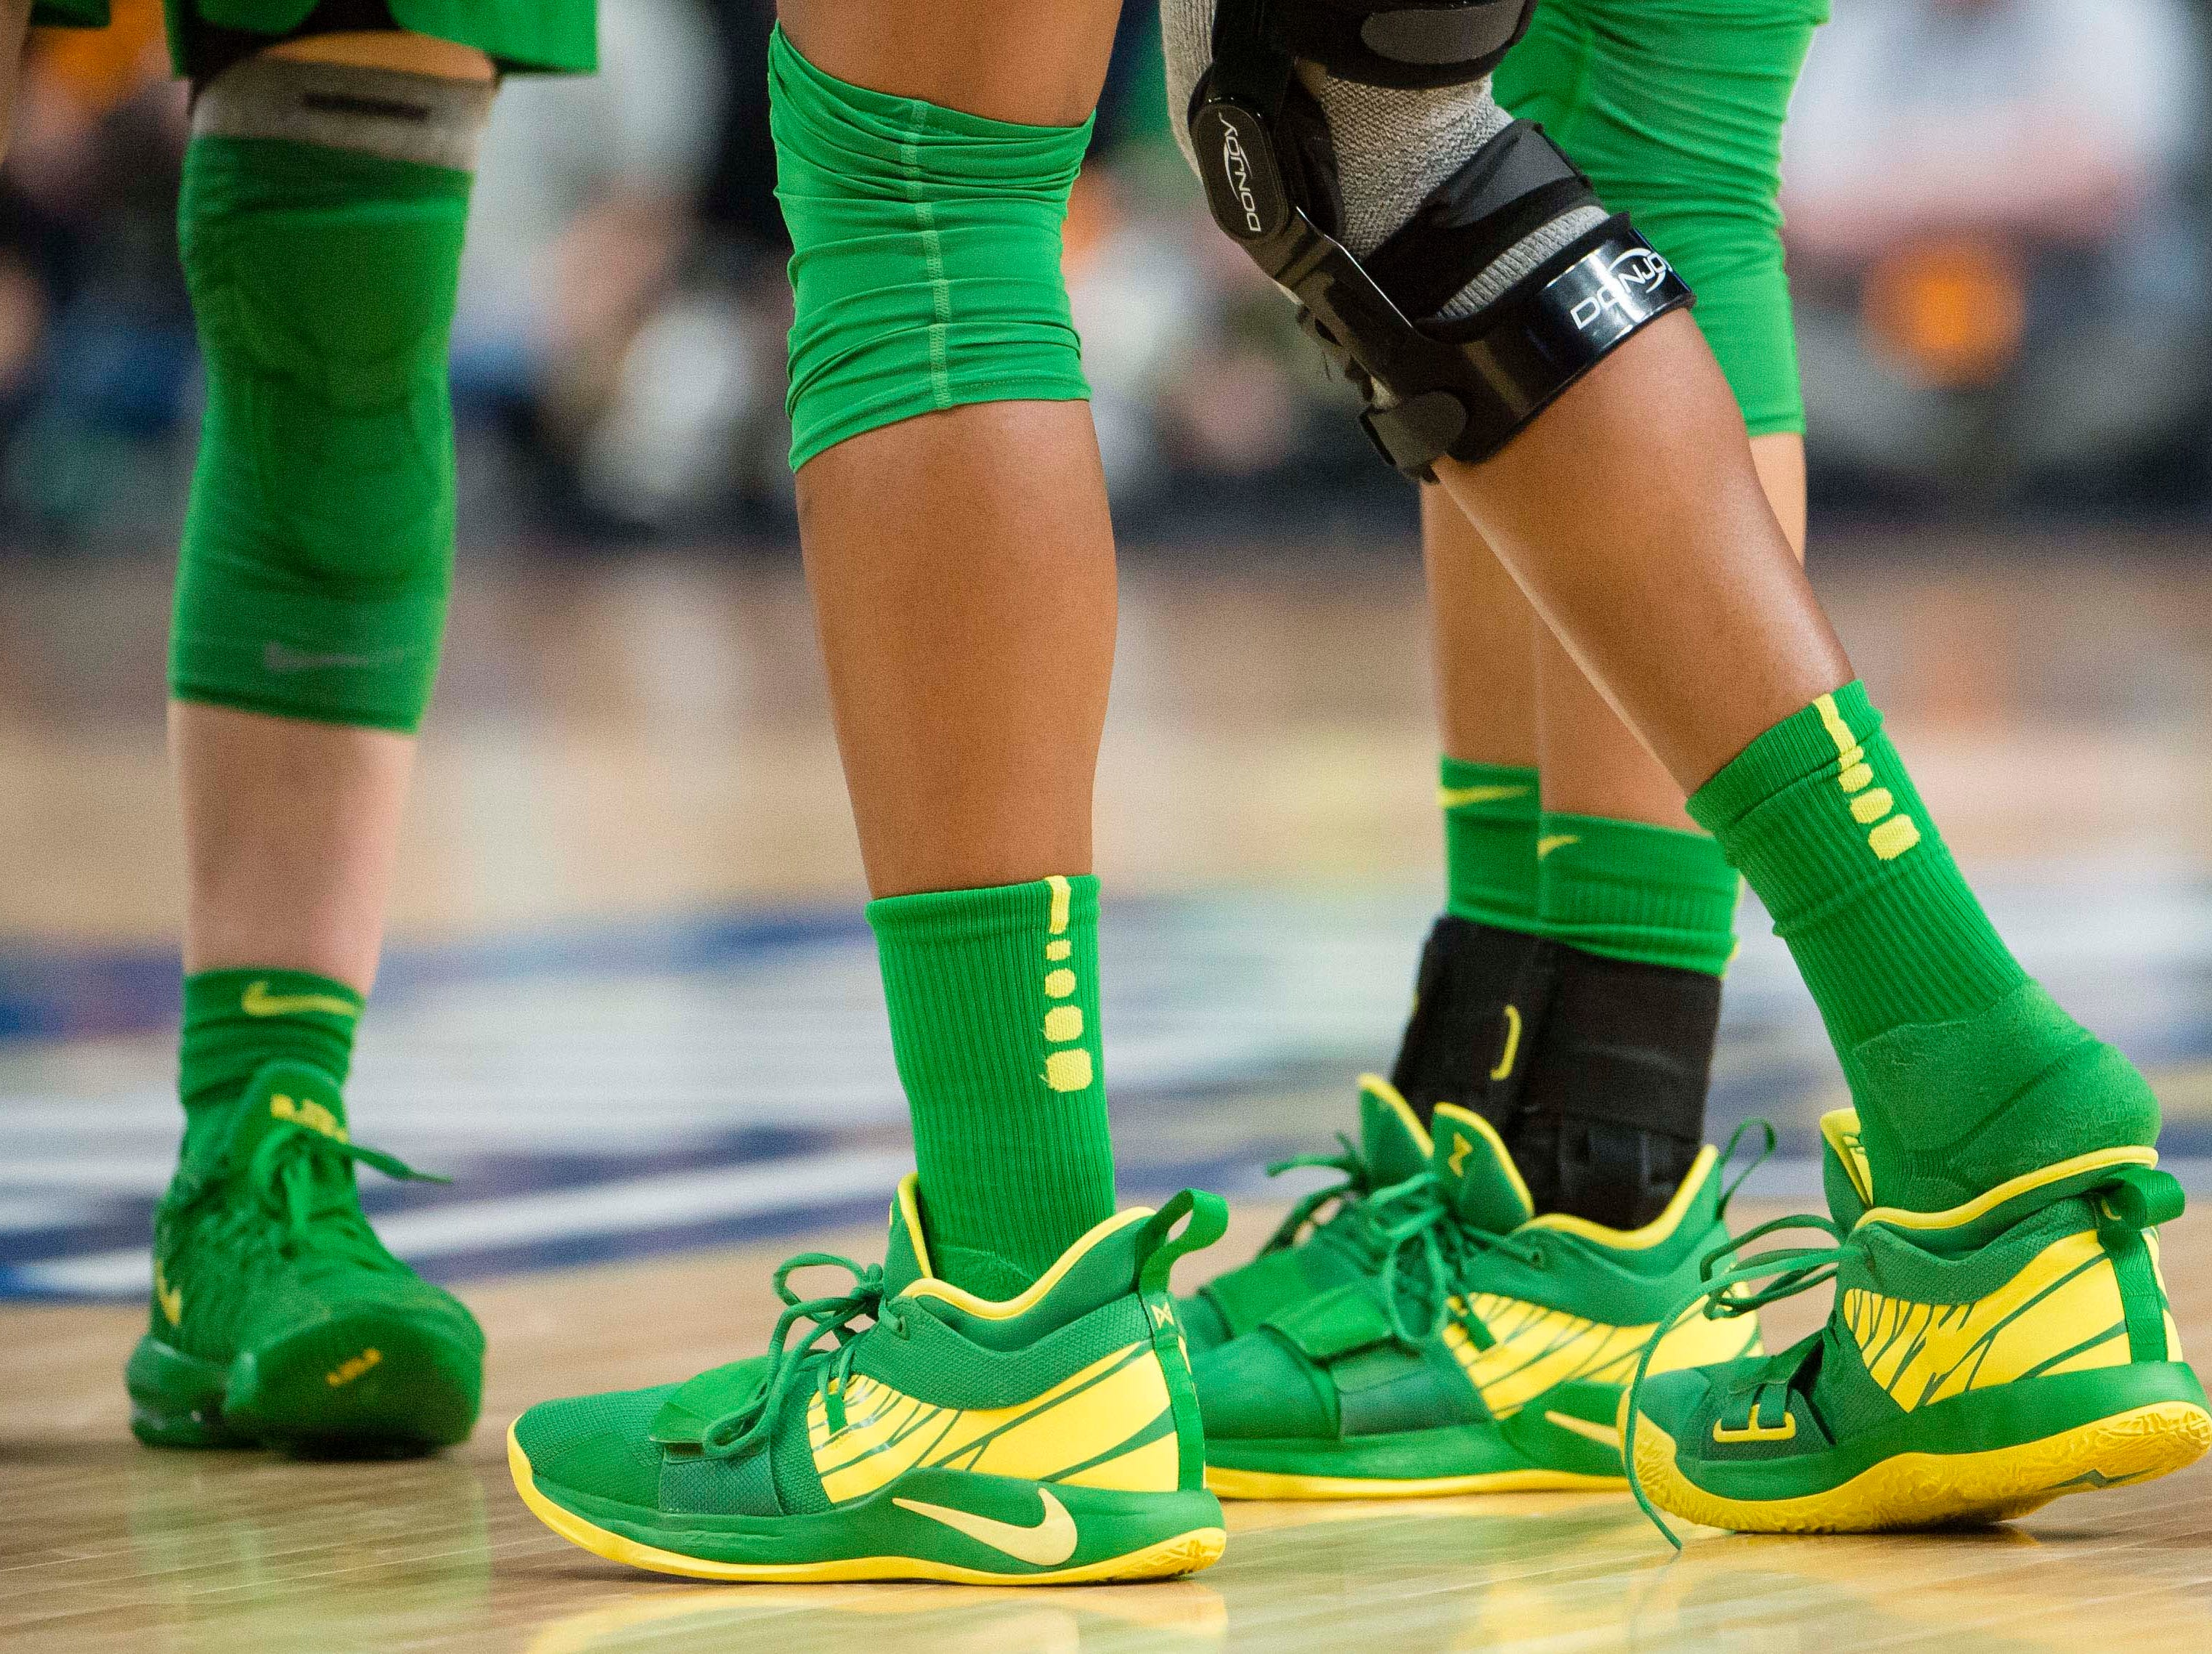 Oregon Ducks forward Ruthy Hebard (24) puts her shoe back on after a play in the second half against the Mississippi State Bulldogs in the championship game of the Portland regional in the women's 2019 NCAA Tournament at Moda Center. The Oregon Ducks beat the Mississippi State Bulldogs 88-84.